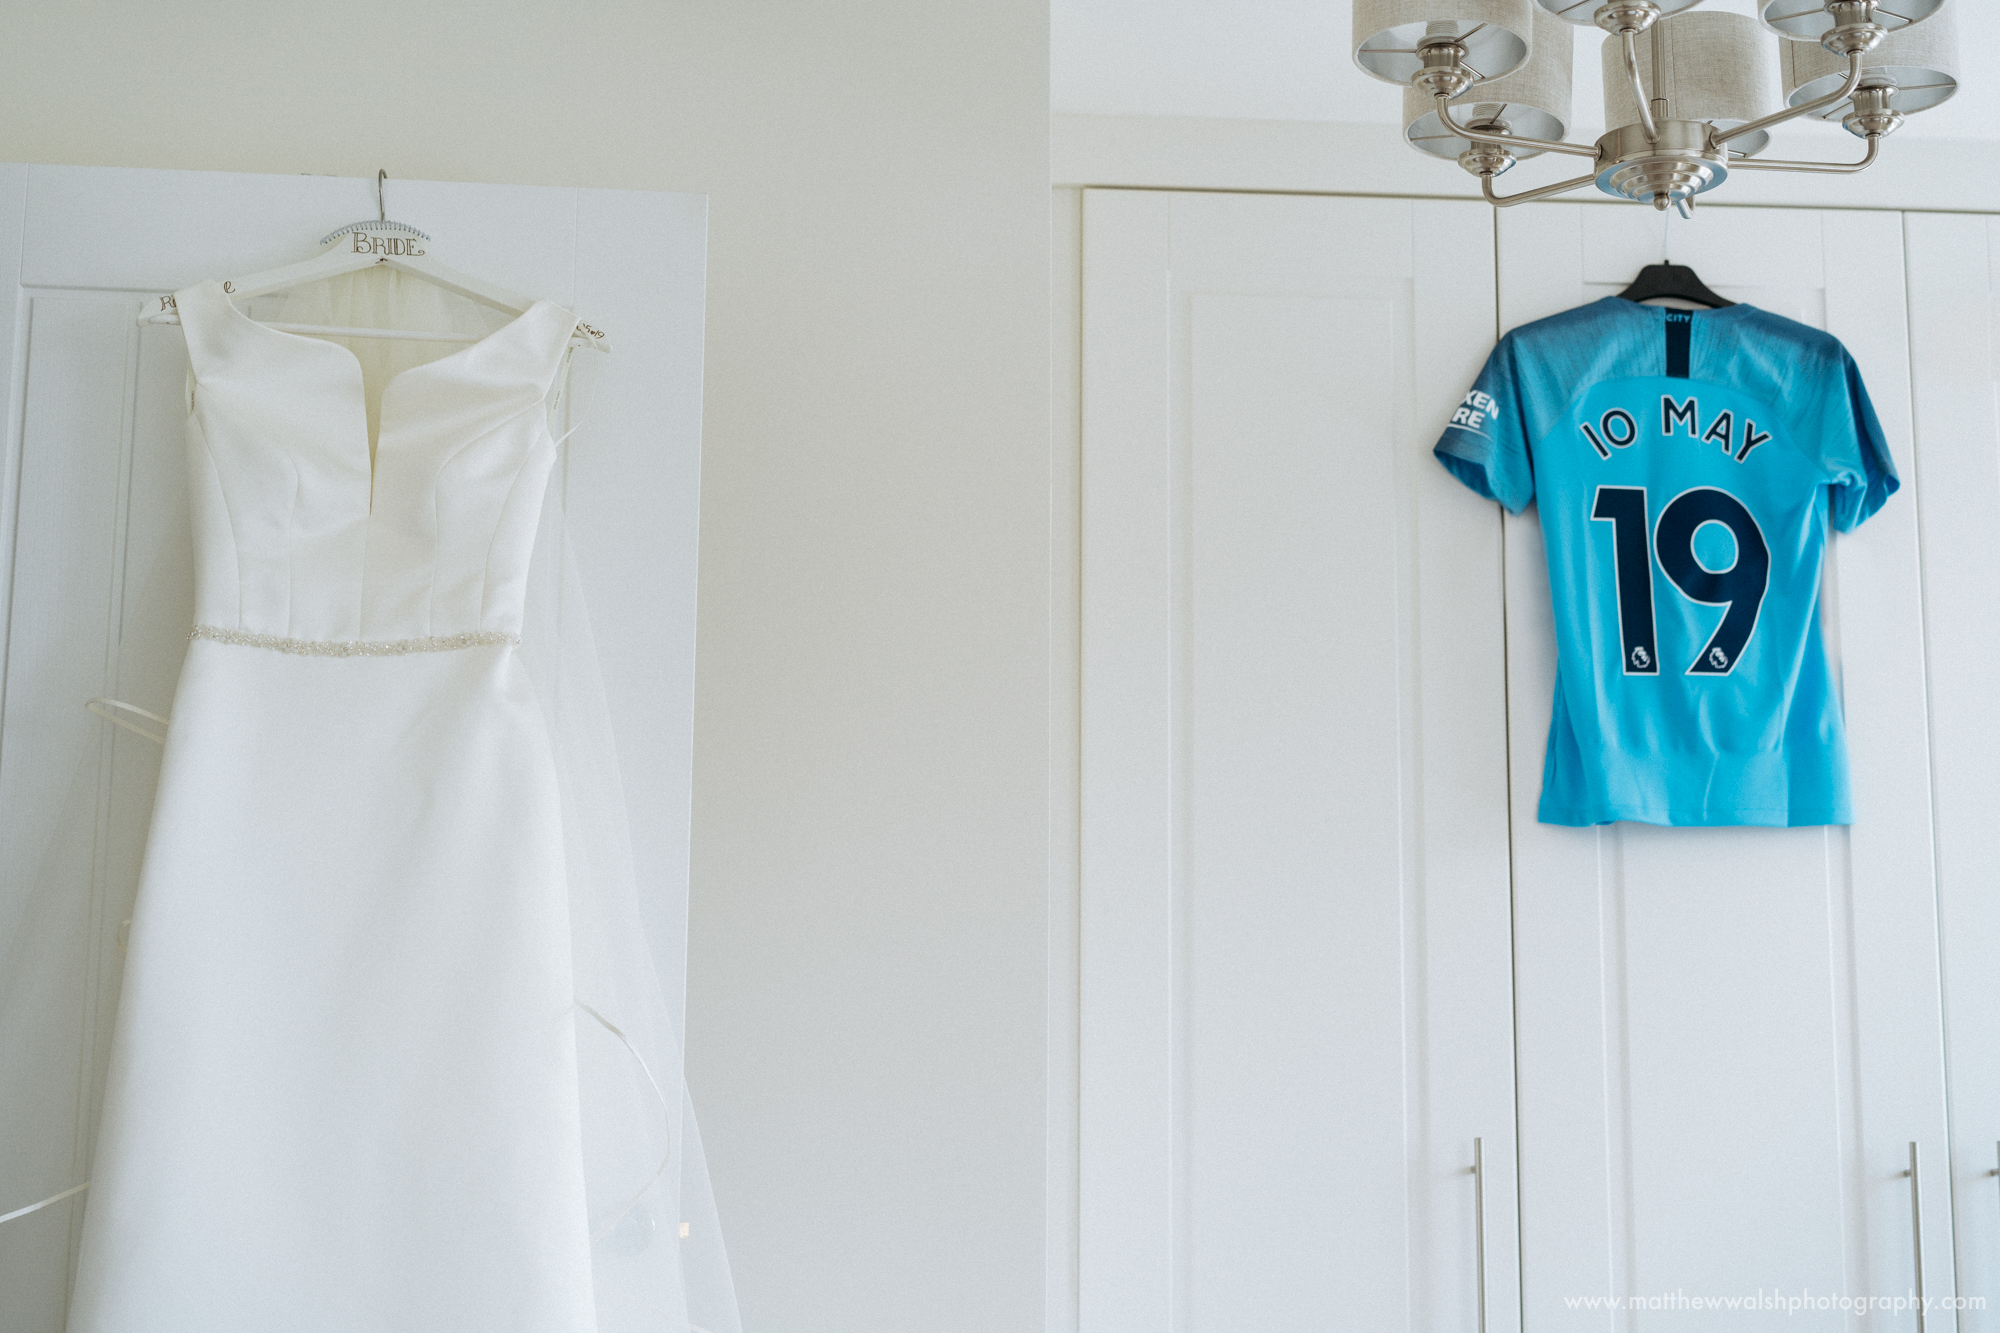 The wedding dress hanging bu a Manchester City football shirt with the wedding date on, the bride being a big football fan